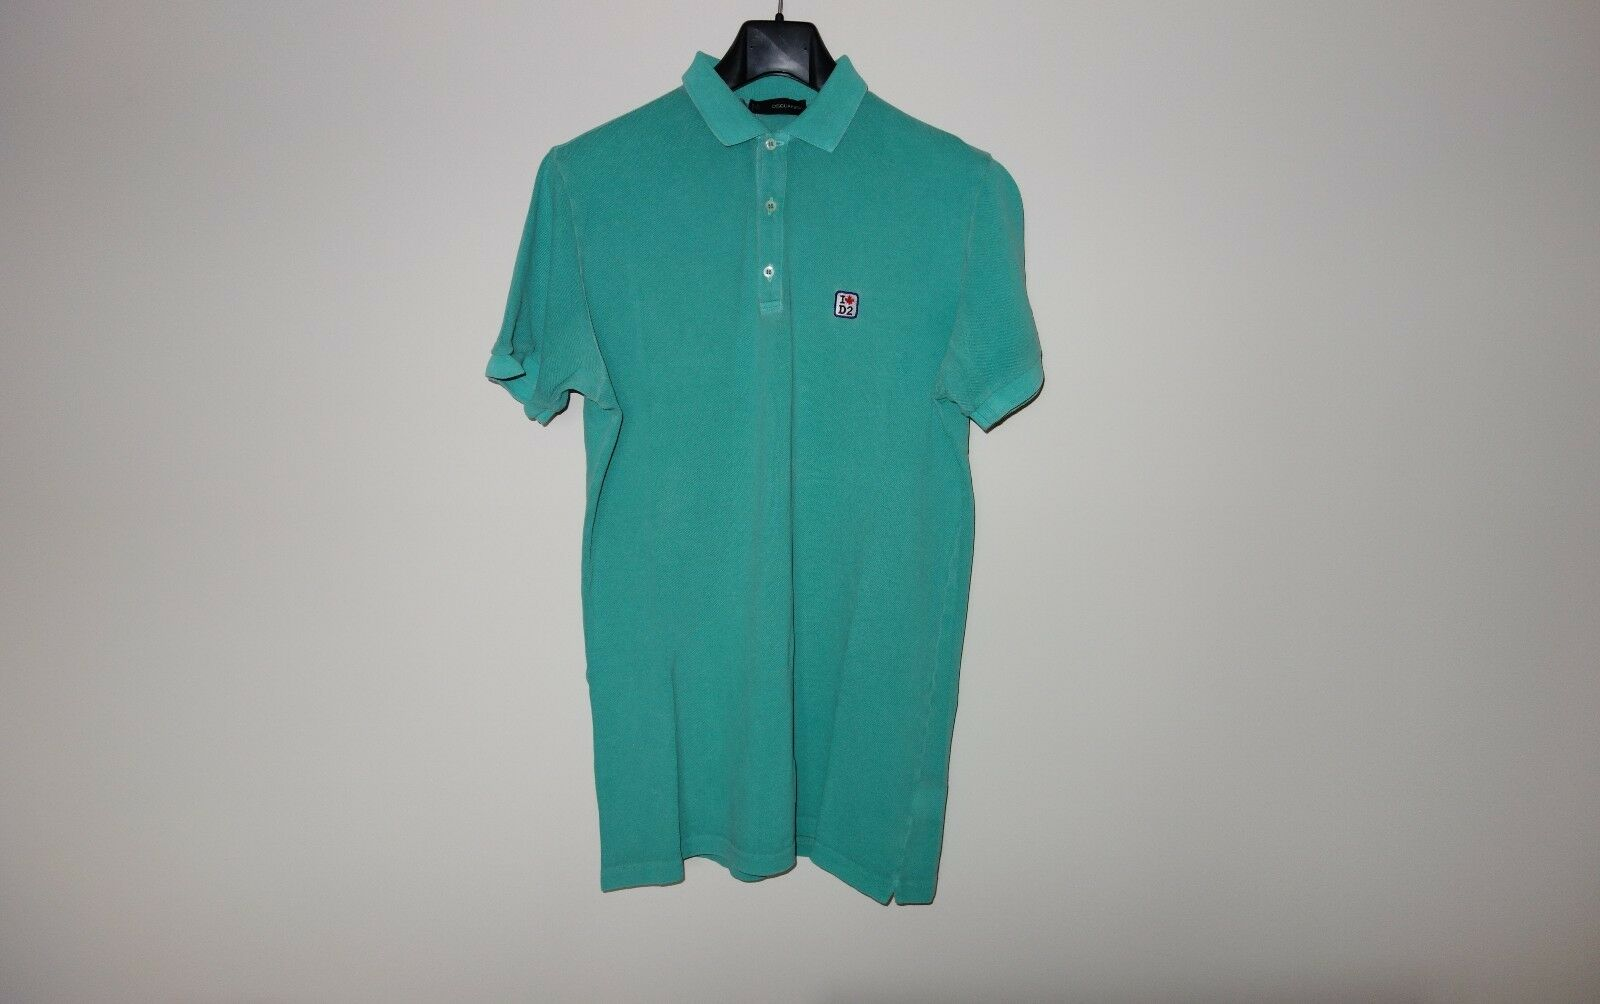 DsquaROT² Runway I LOVE D2 T-shirt Polo M SS/10 74GC594 Made in   , RARE